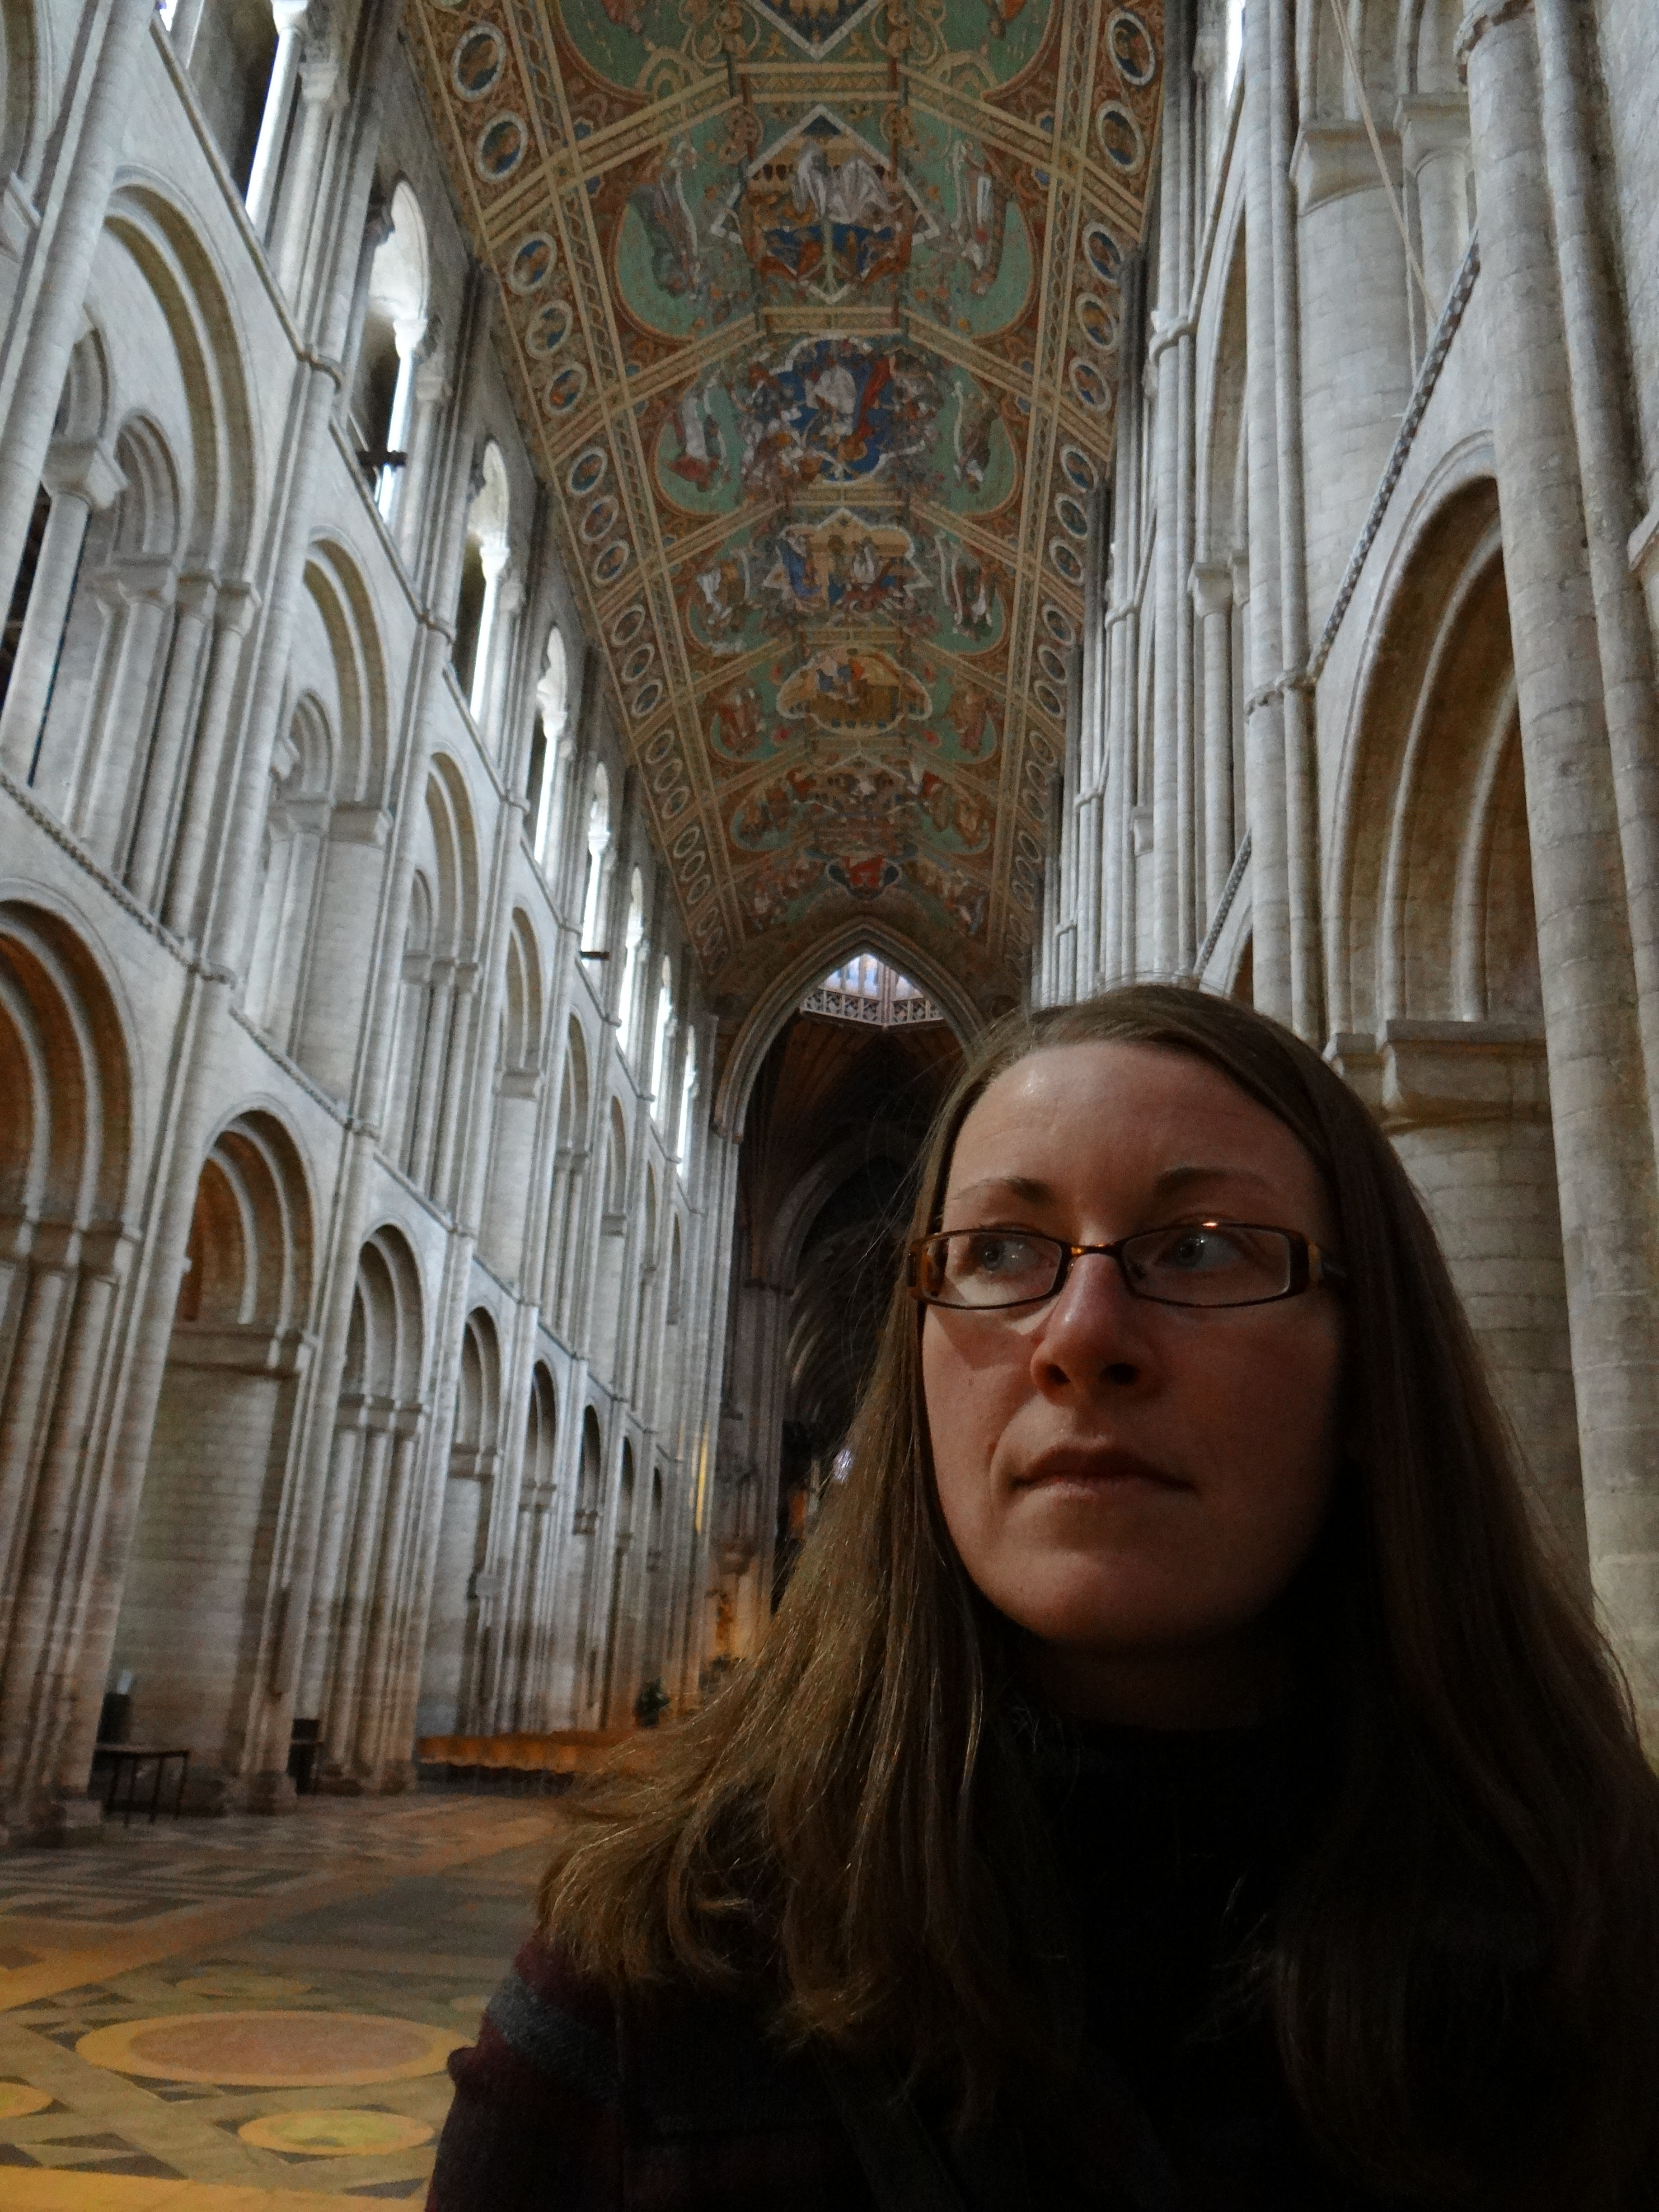 Ely Cathedral, a wonder of the Middle Ages